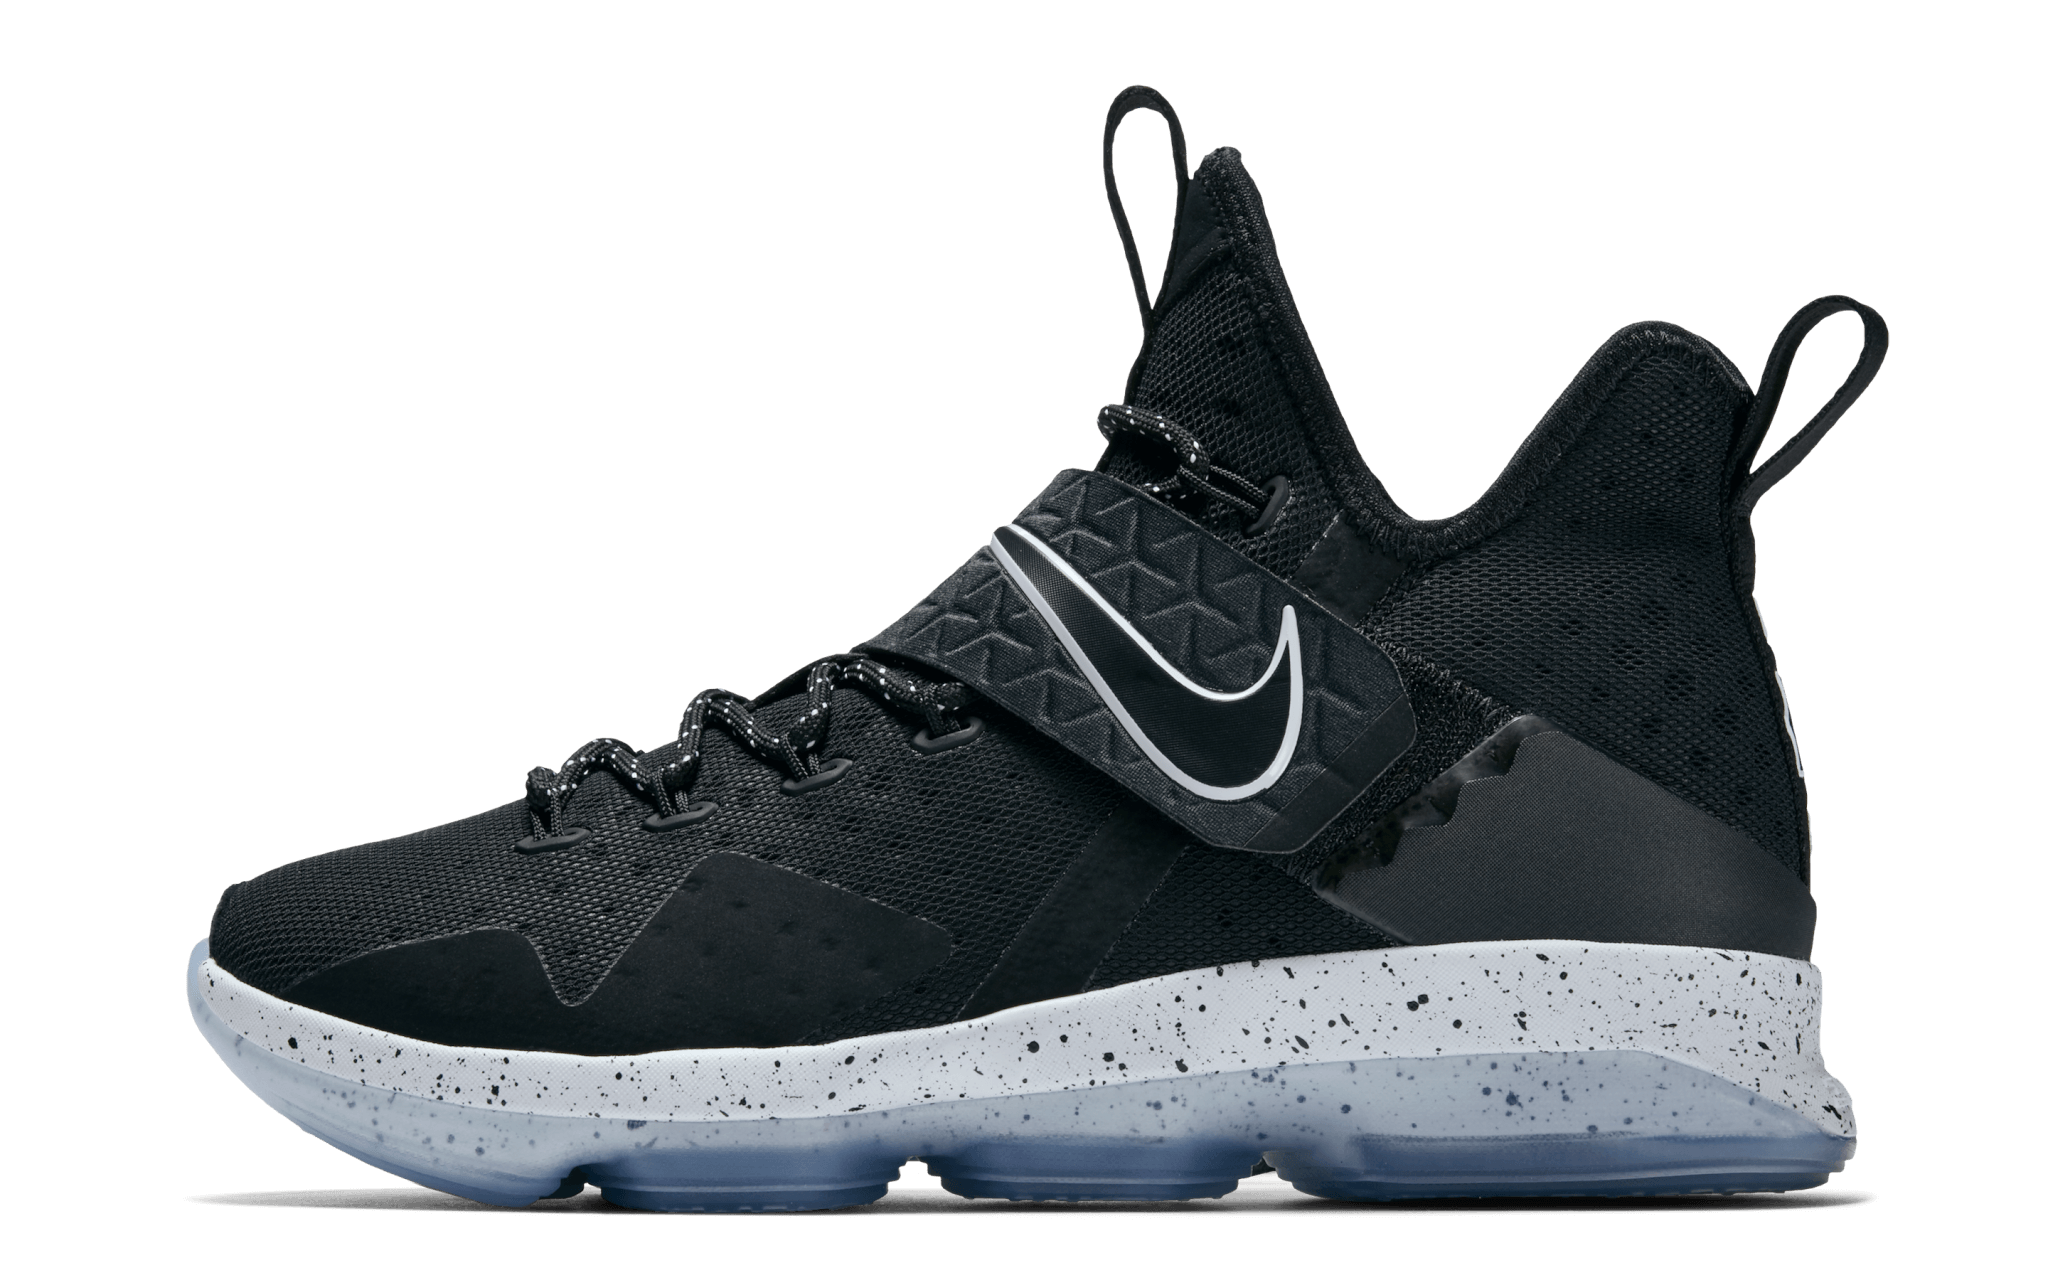 67d6e731e117 Nike Lebron 14 Performance Review